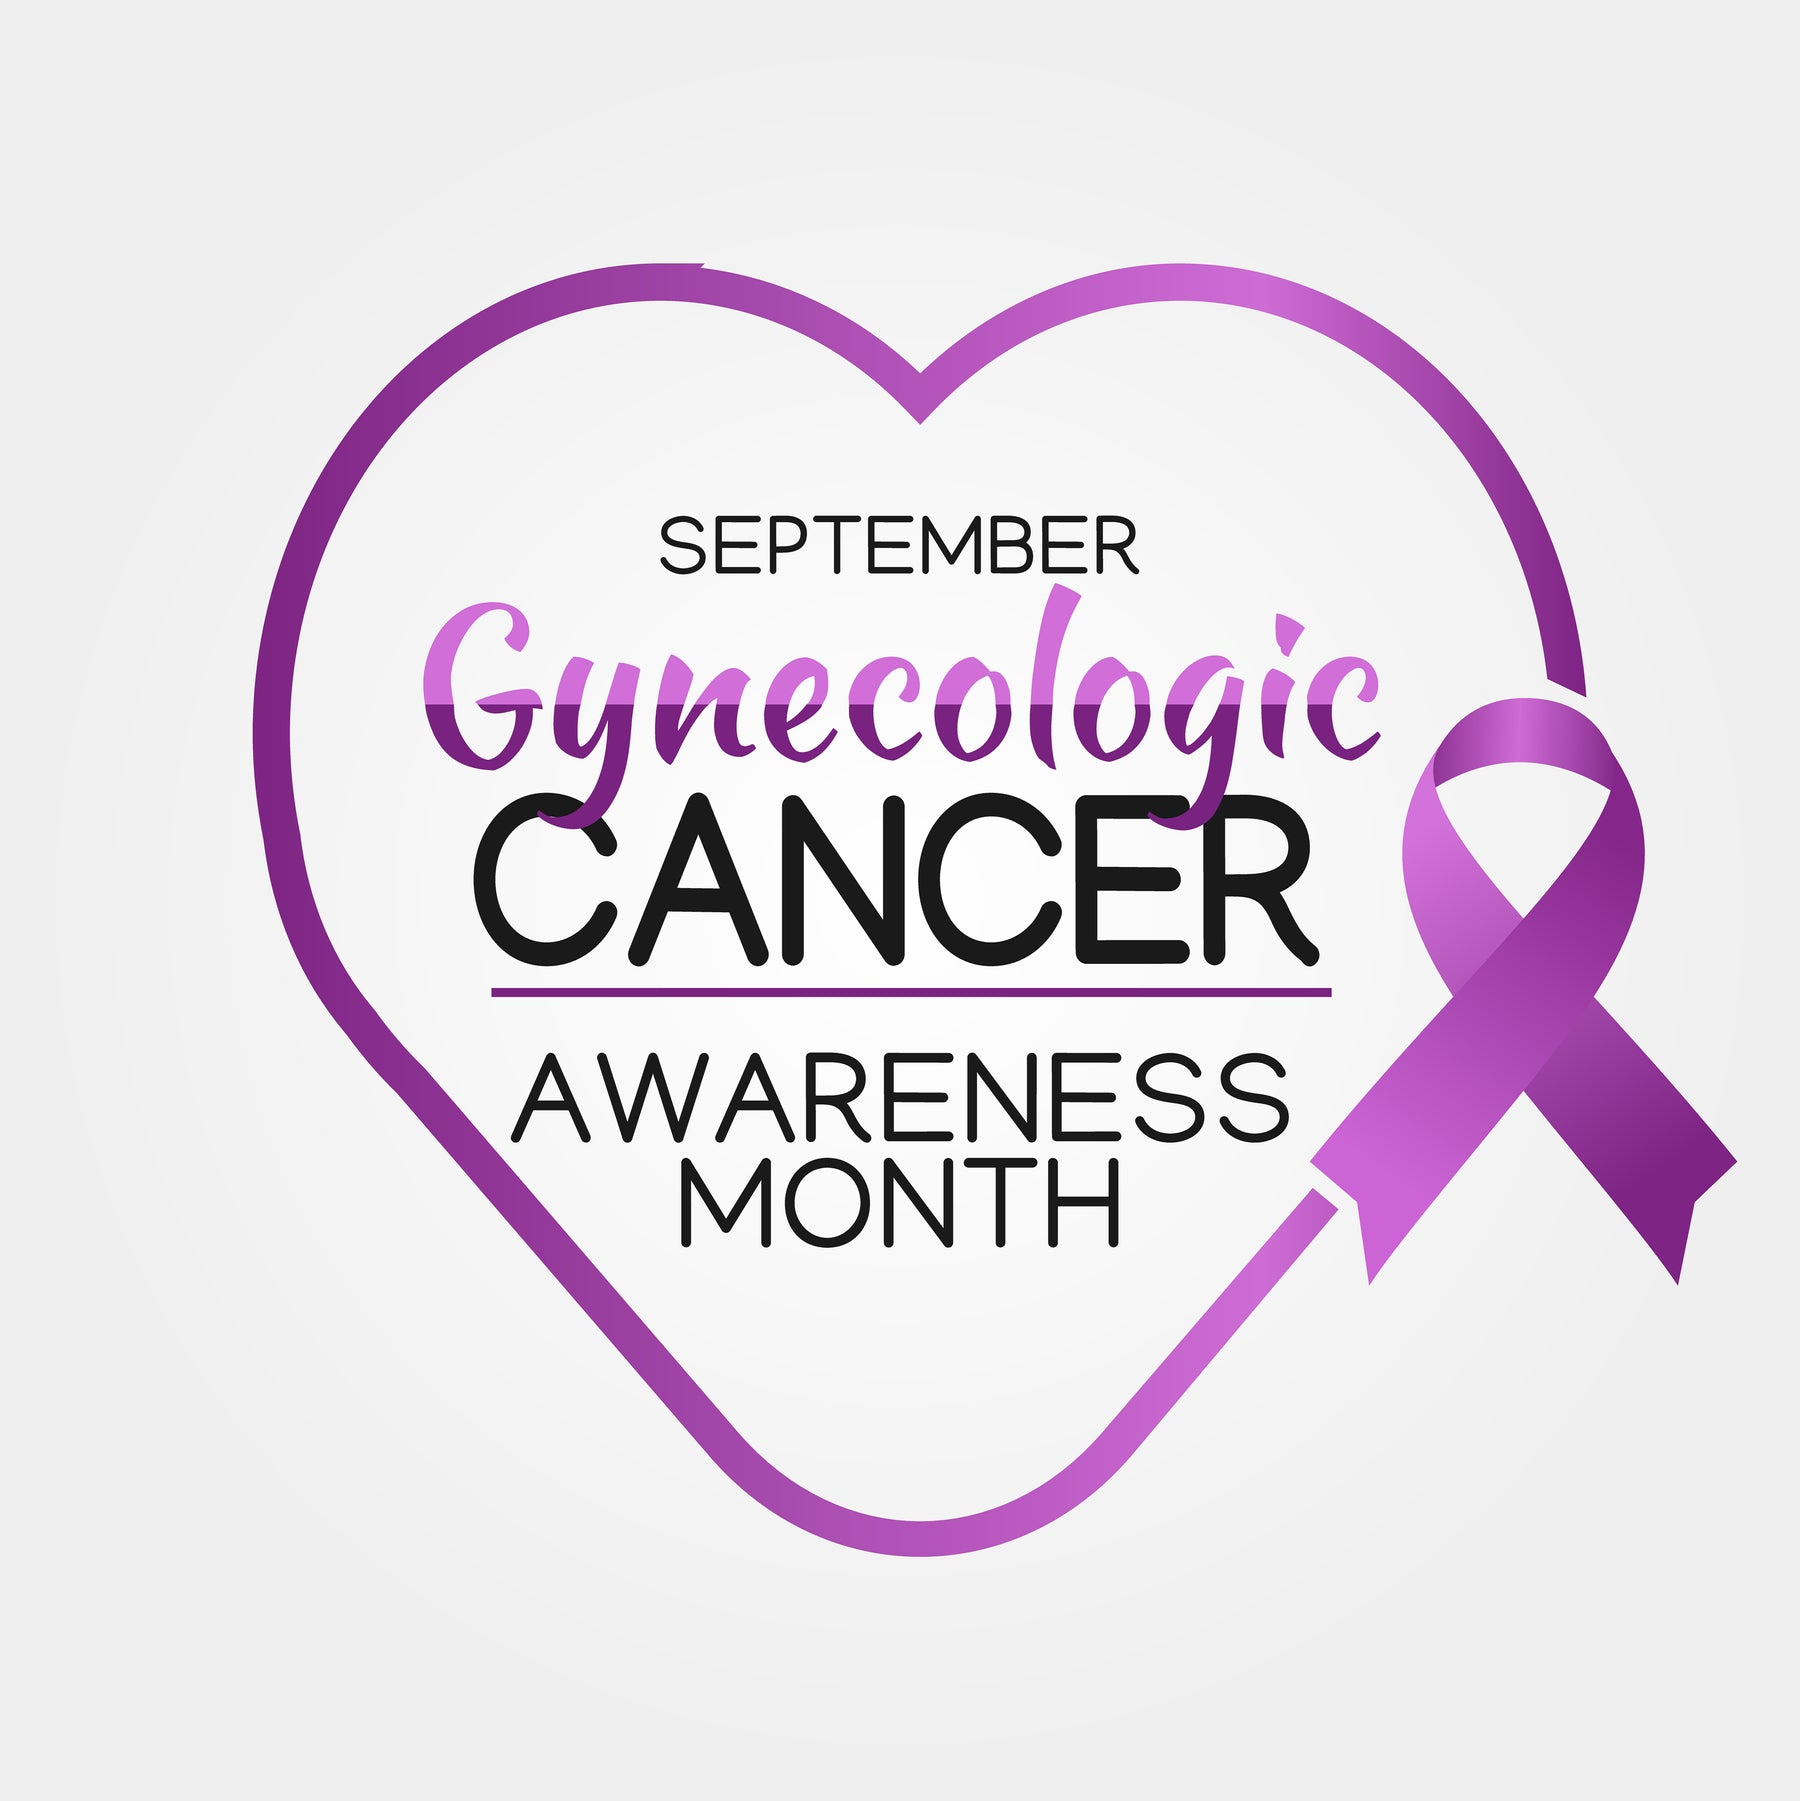 Gynecologic Cancer Awareness Month